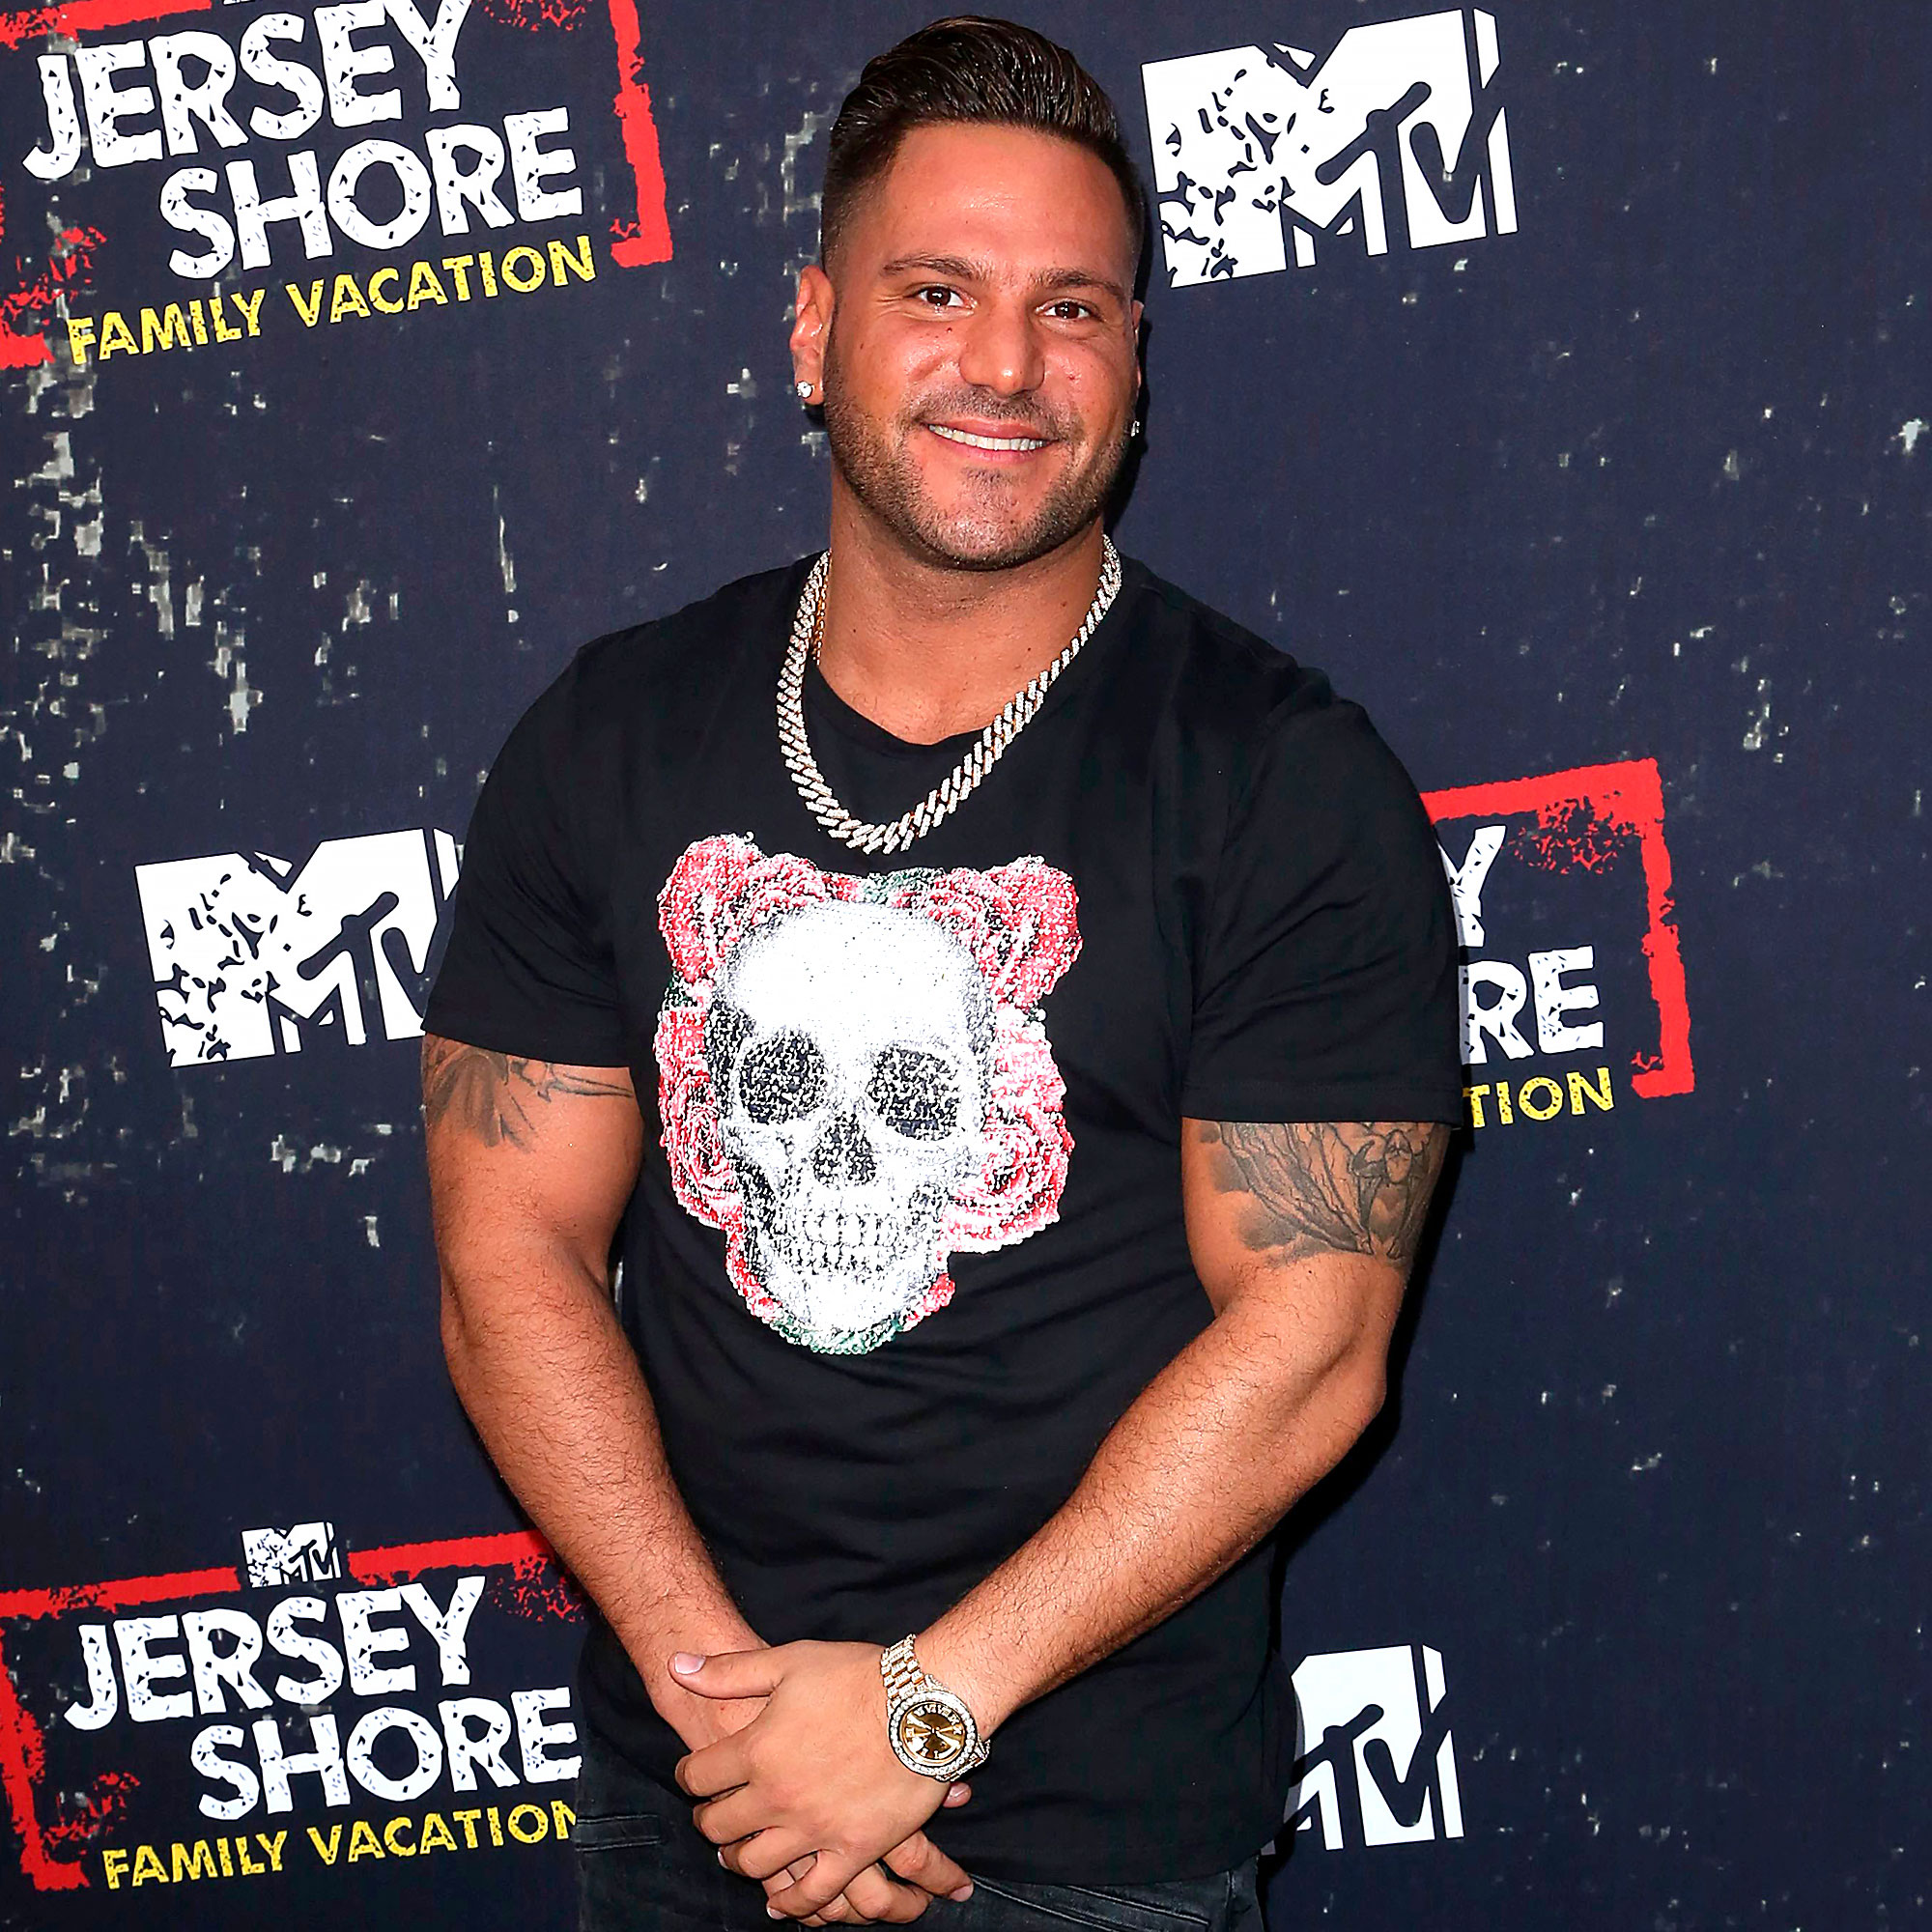 Jersey Shores Ronnie Ortiz-Magro Speaks Out After Domestic Violence Arrest